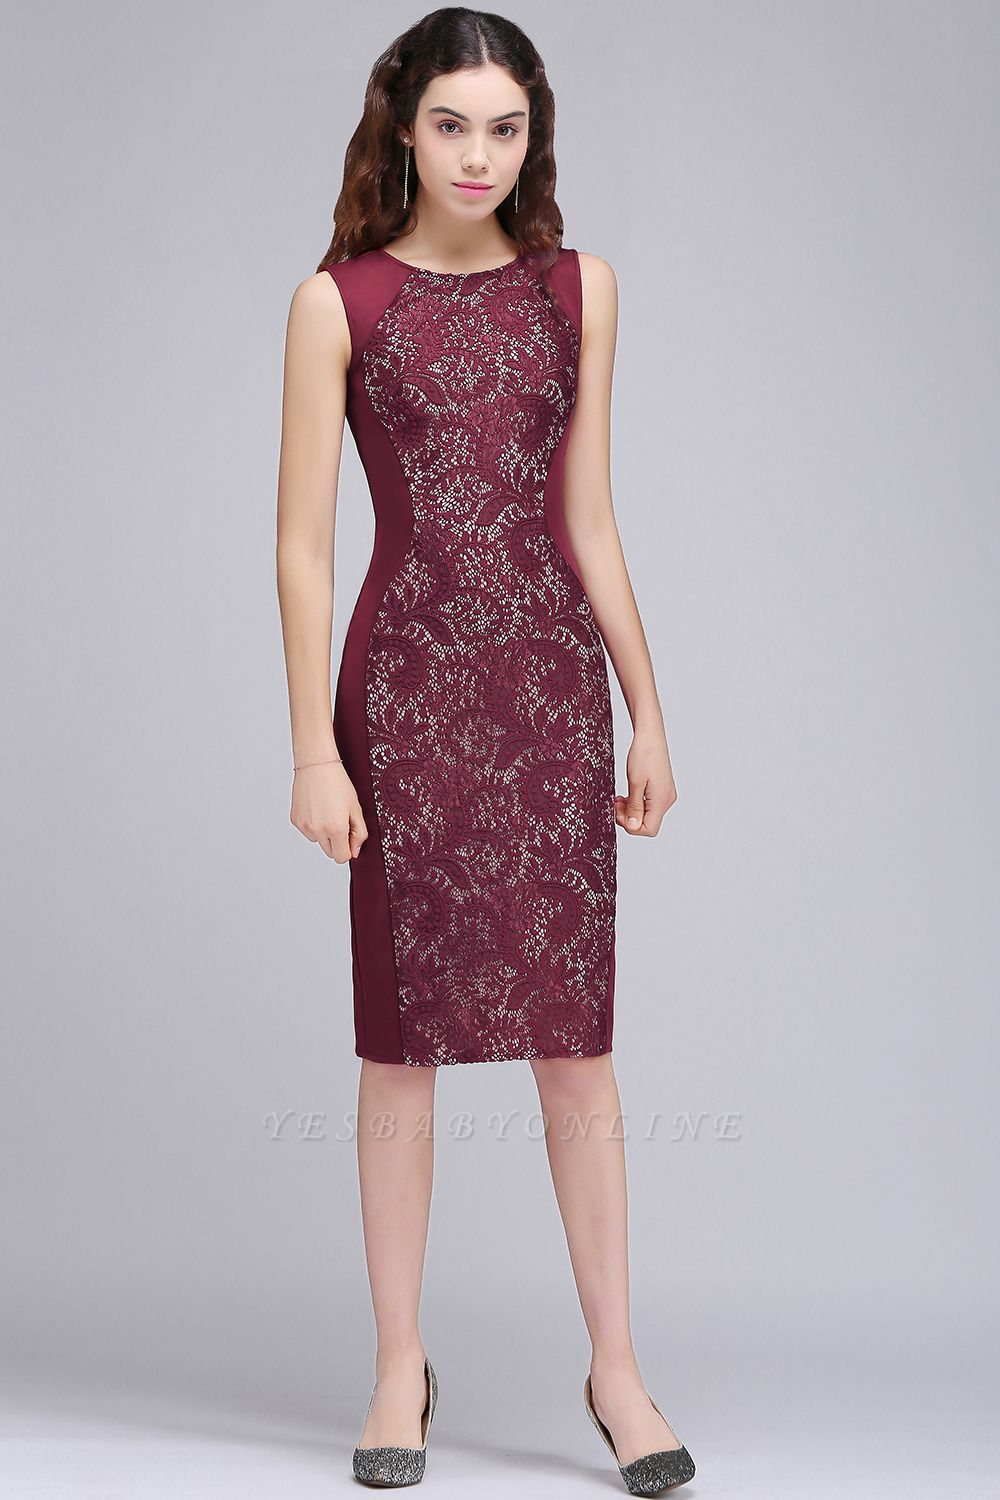 Cheap Cheap Burgungdy Cap Sleeve Lace Mermaid Homecoming Cocktail Party Dress in Stock